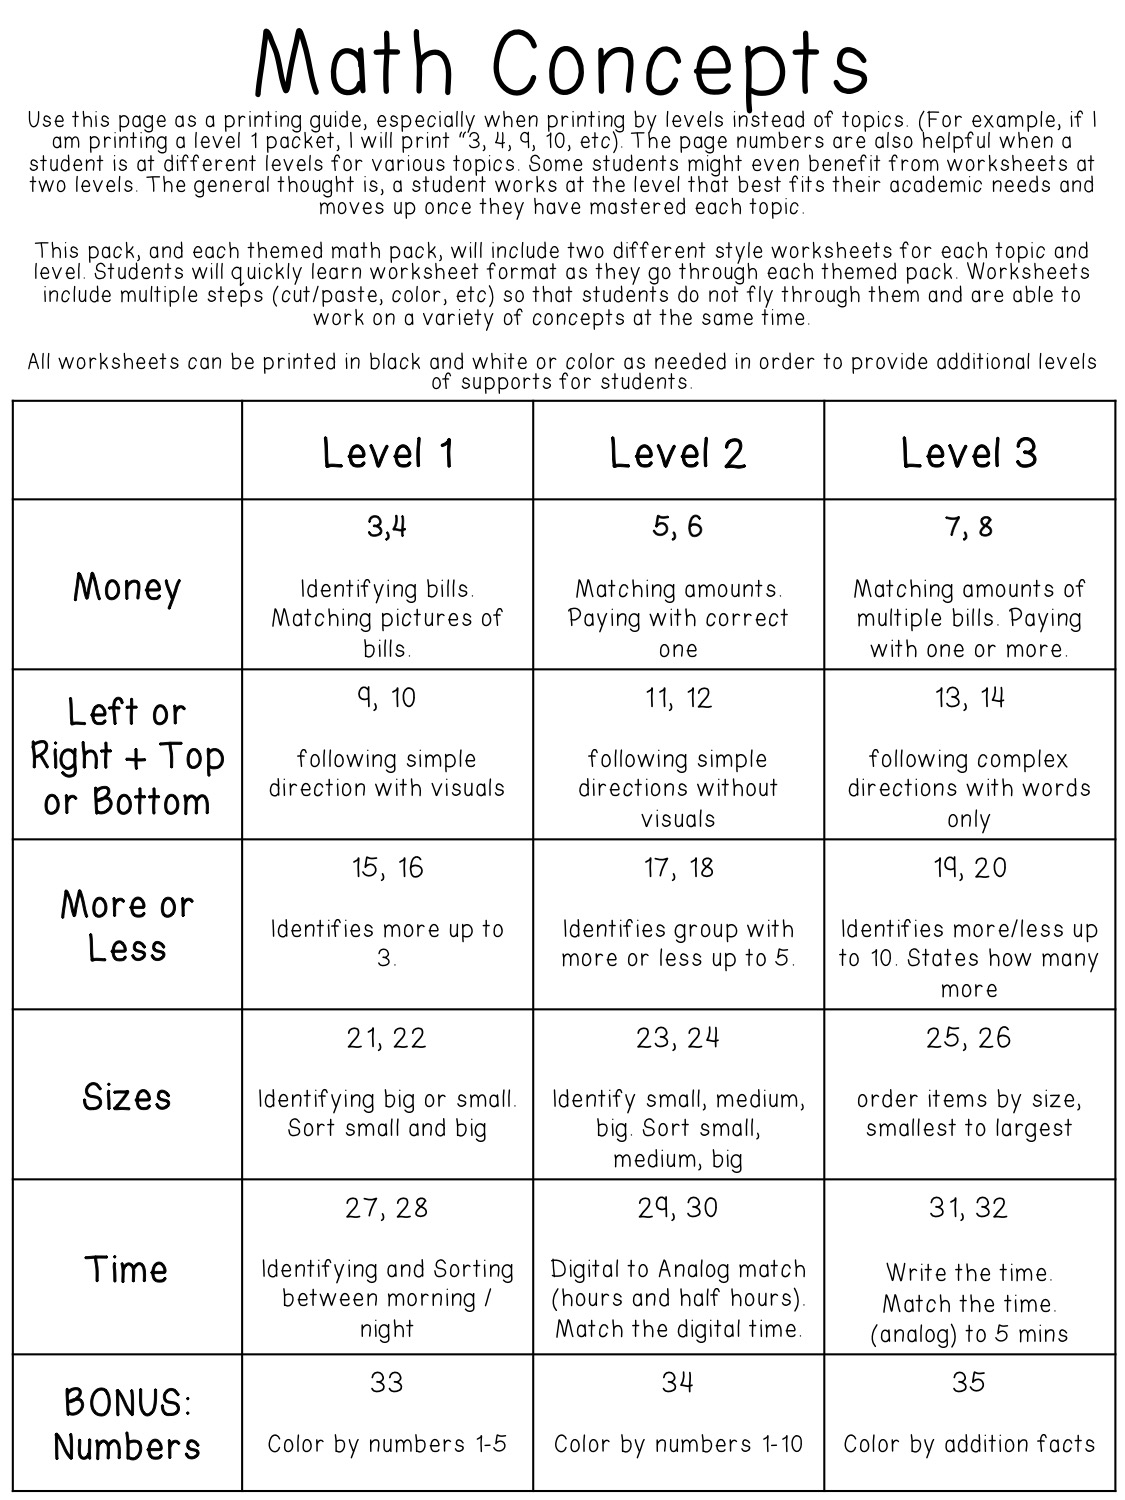 Life Skills Worksheets Free Worksheets Library | Download and ...